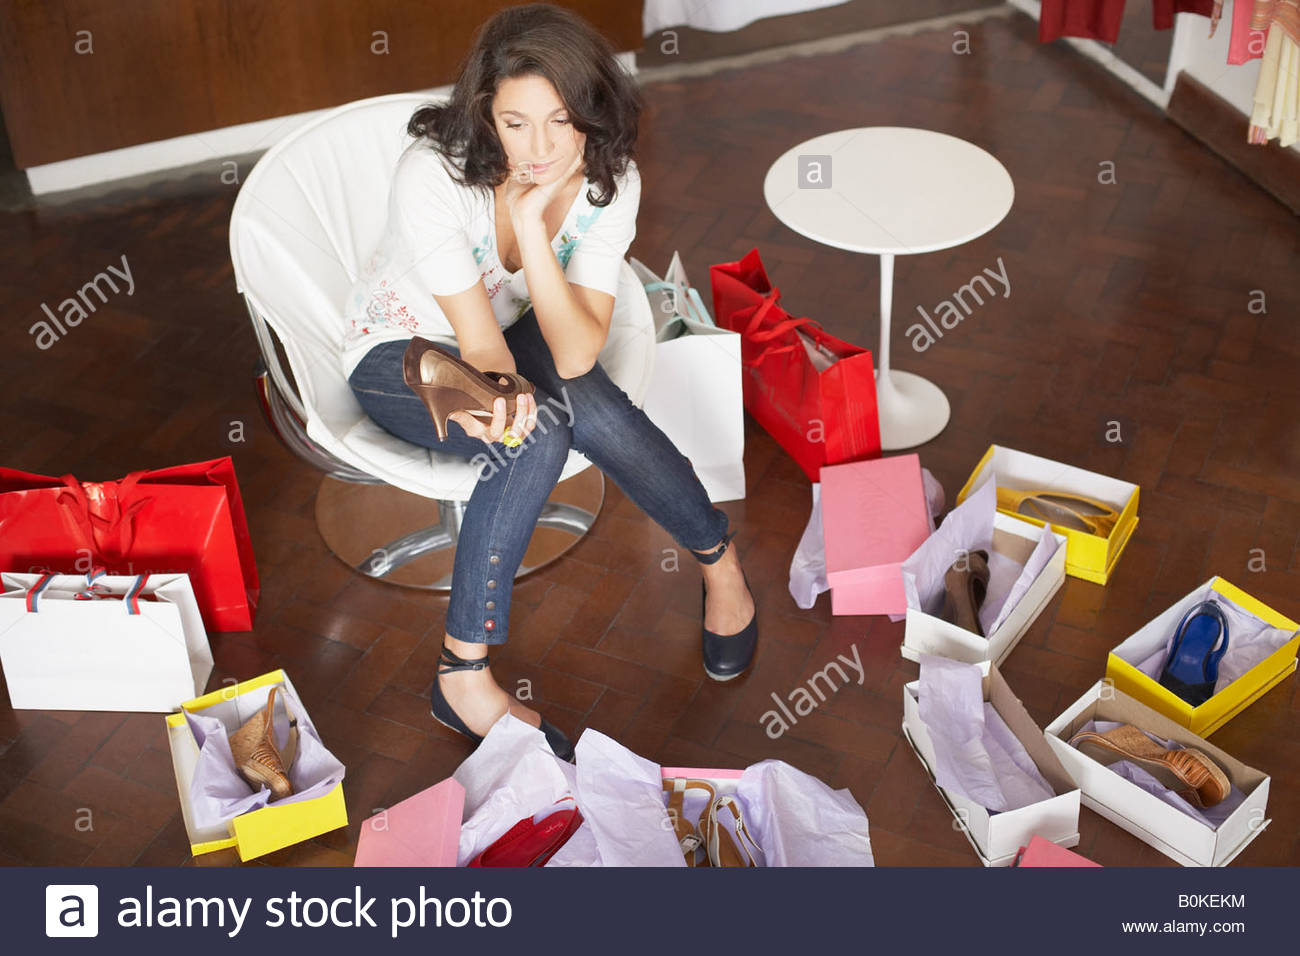 Woman in department store trying on shoes - Stock Image